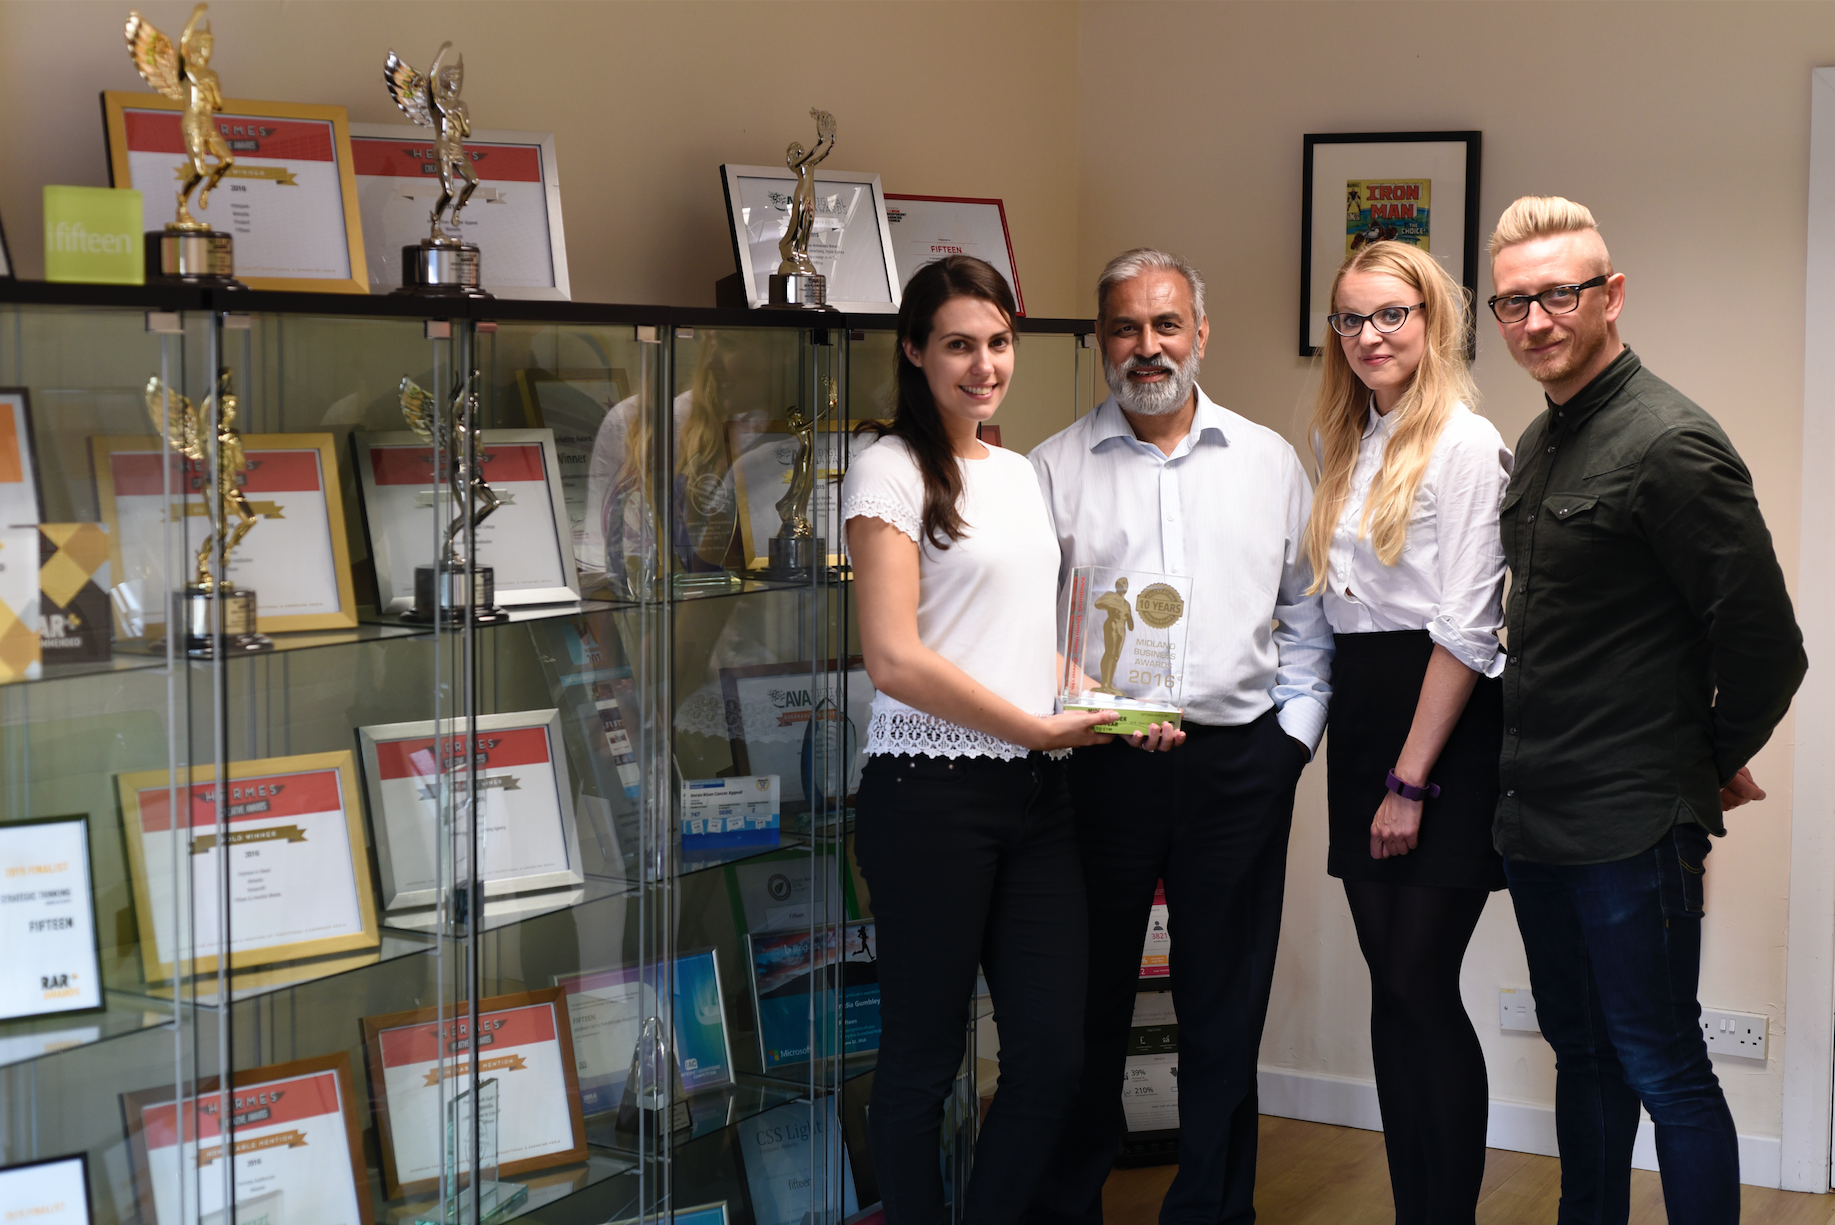 midlands-business-awards-harj-sandher-digital-marketing